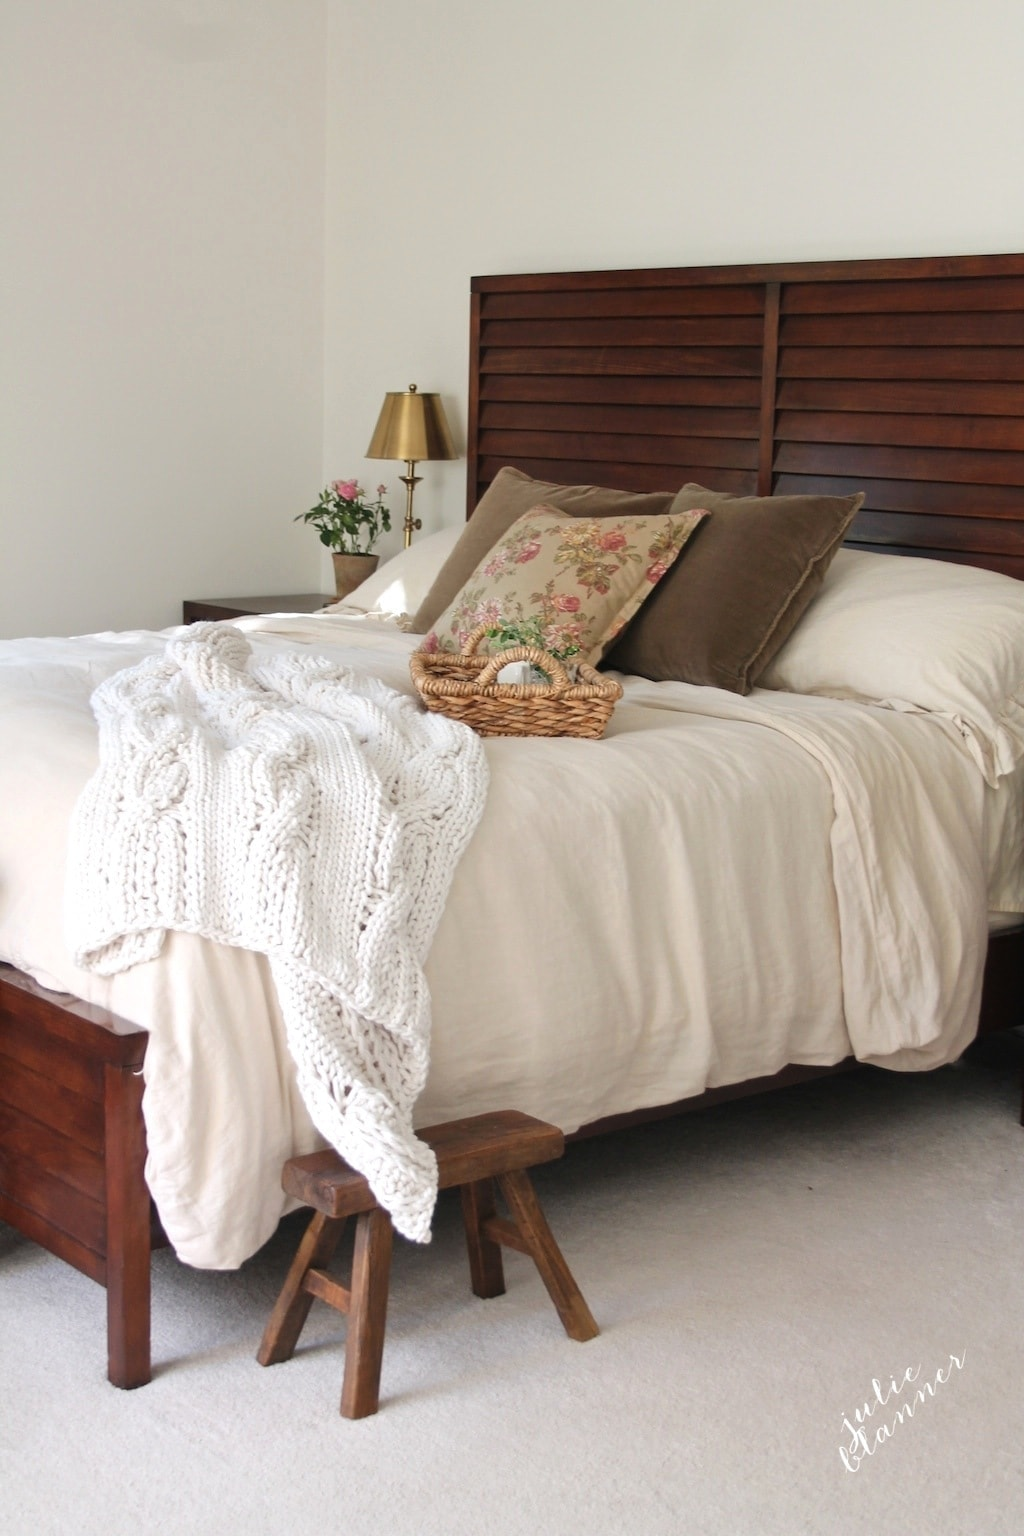 Master bedroom refresh - making the most from what you have, adding accents